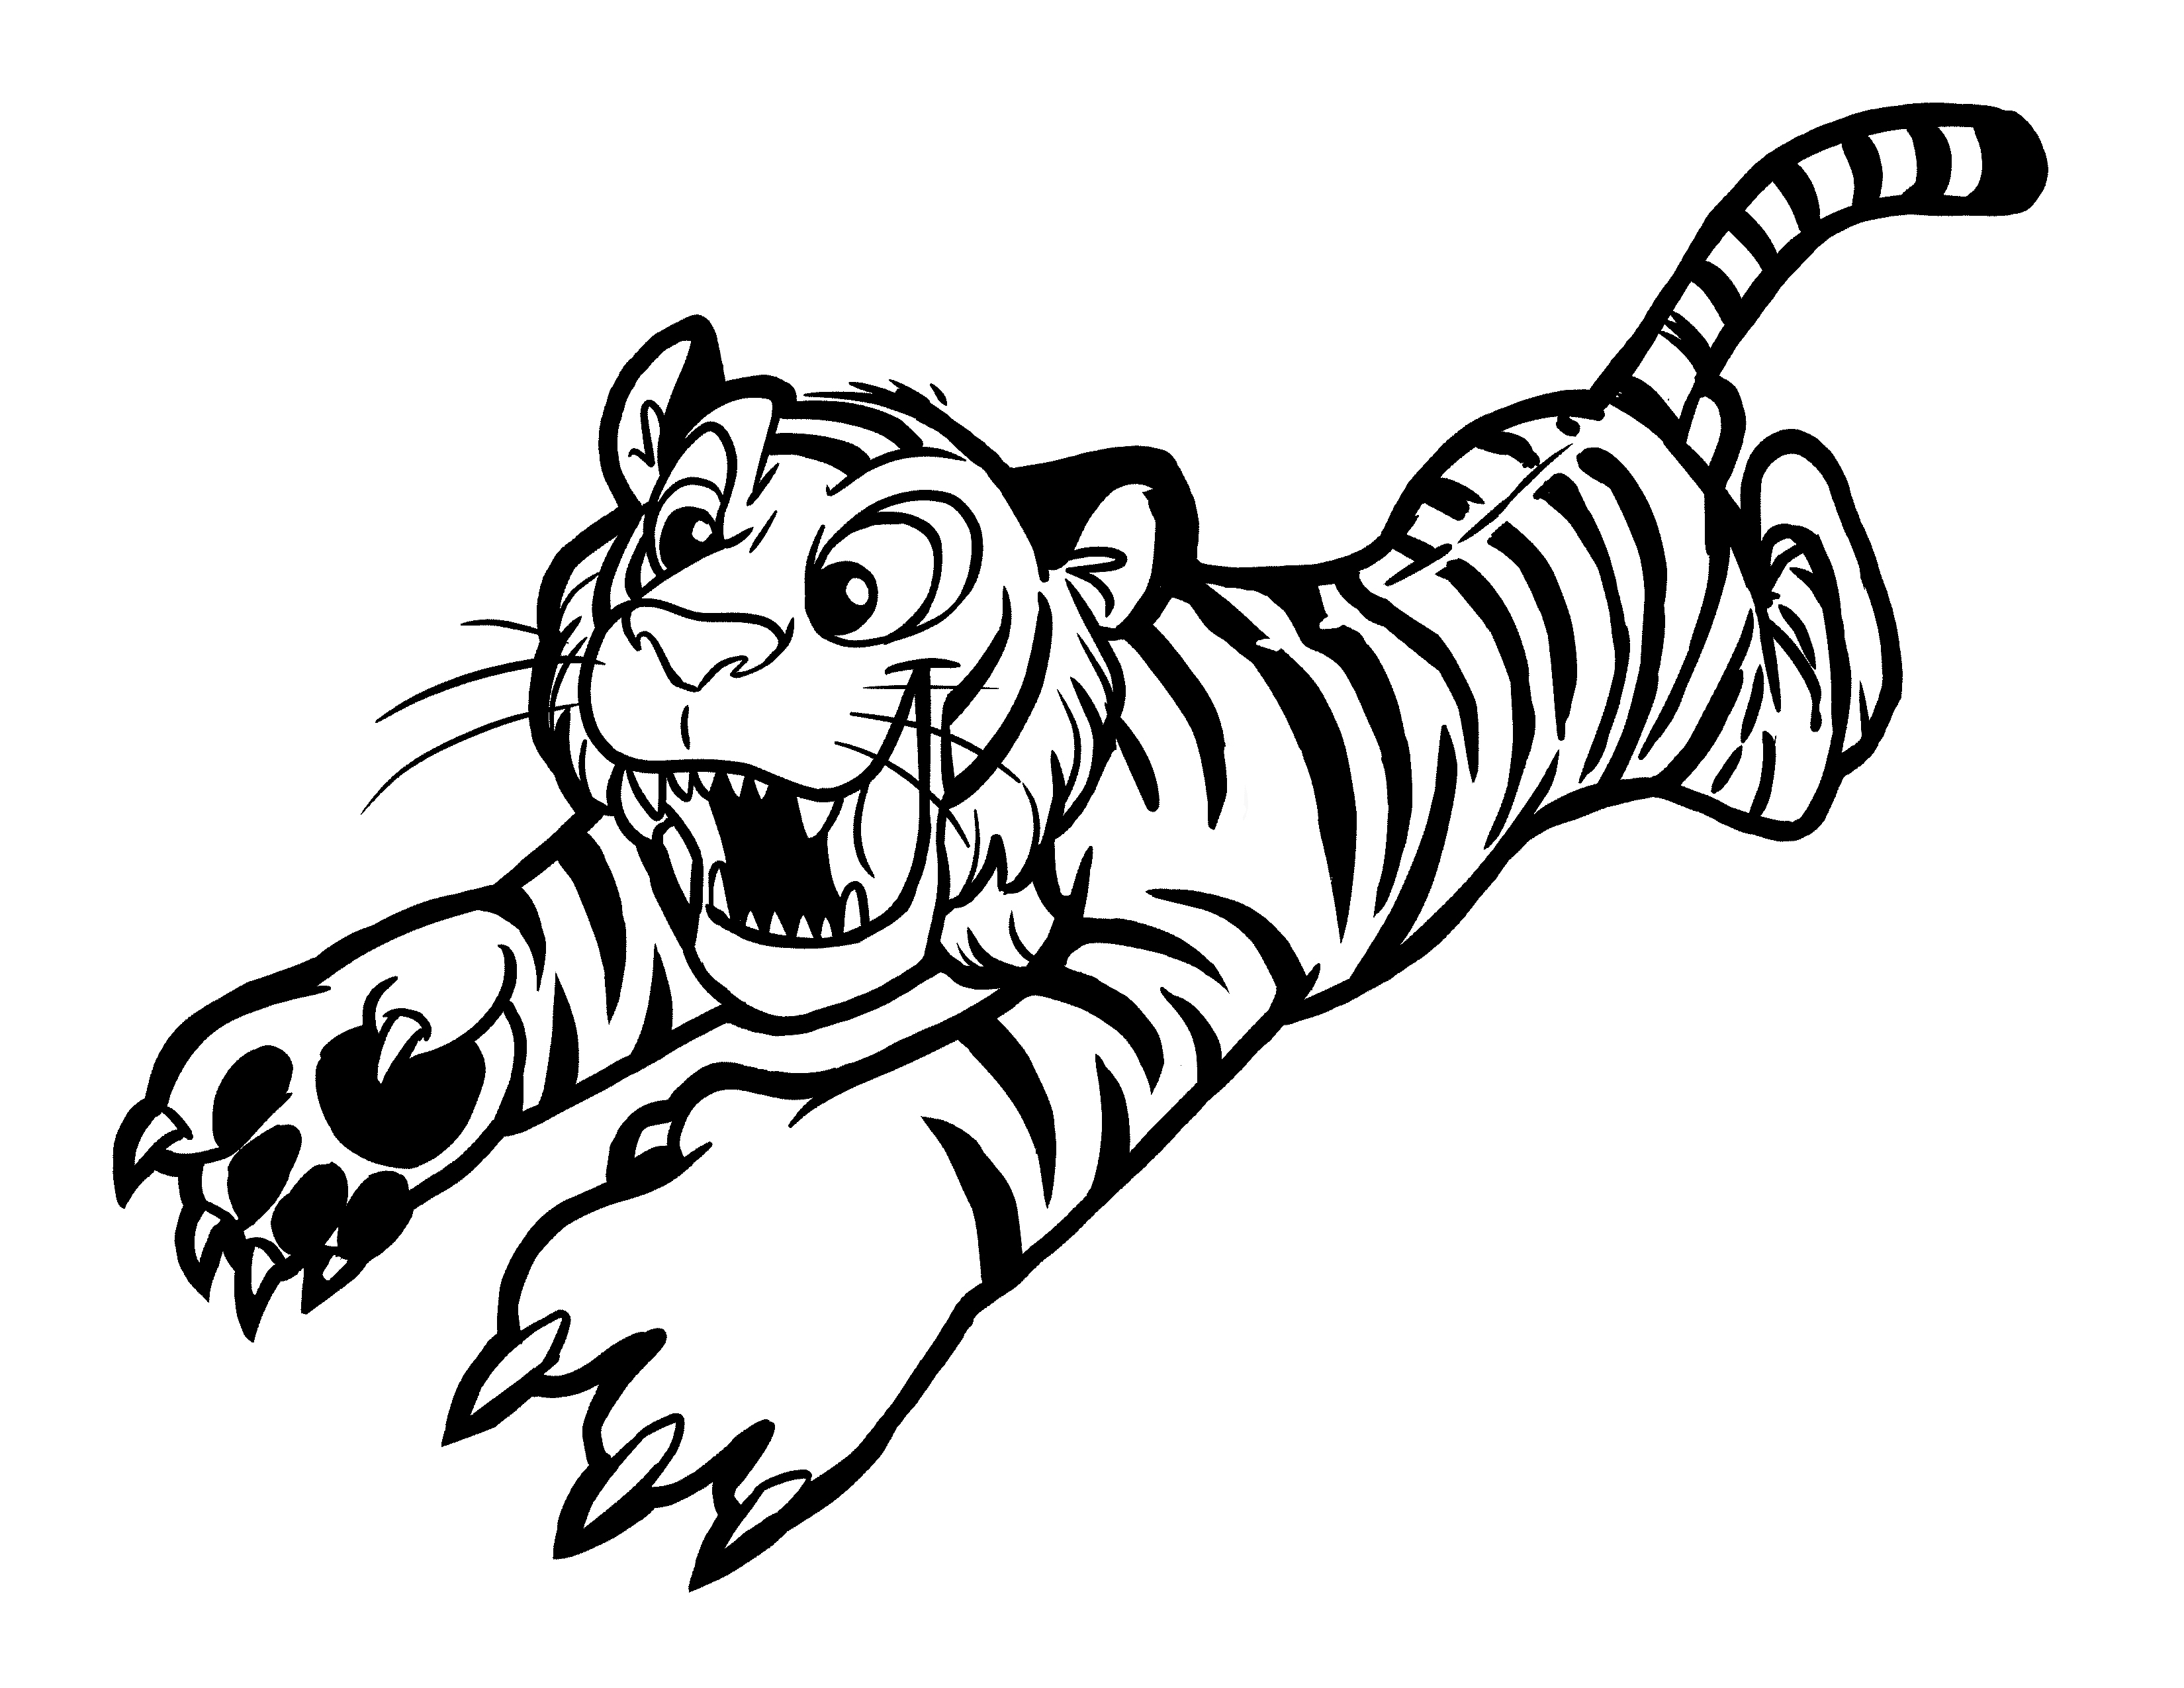 tiger printable coloring pages tigers free to color for children tigers kids coloring pages coloring pages tiger printable